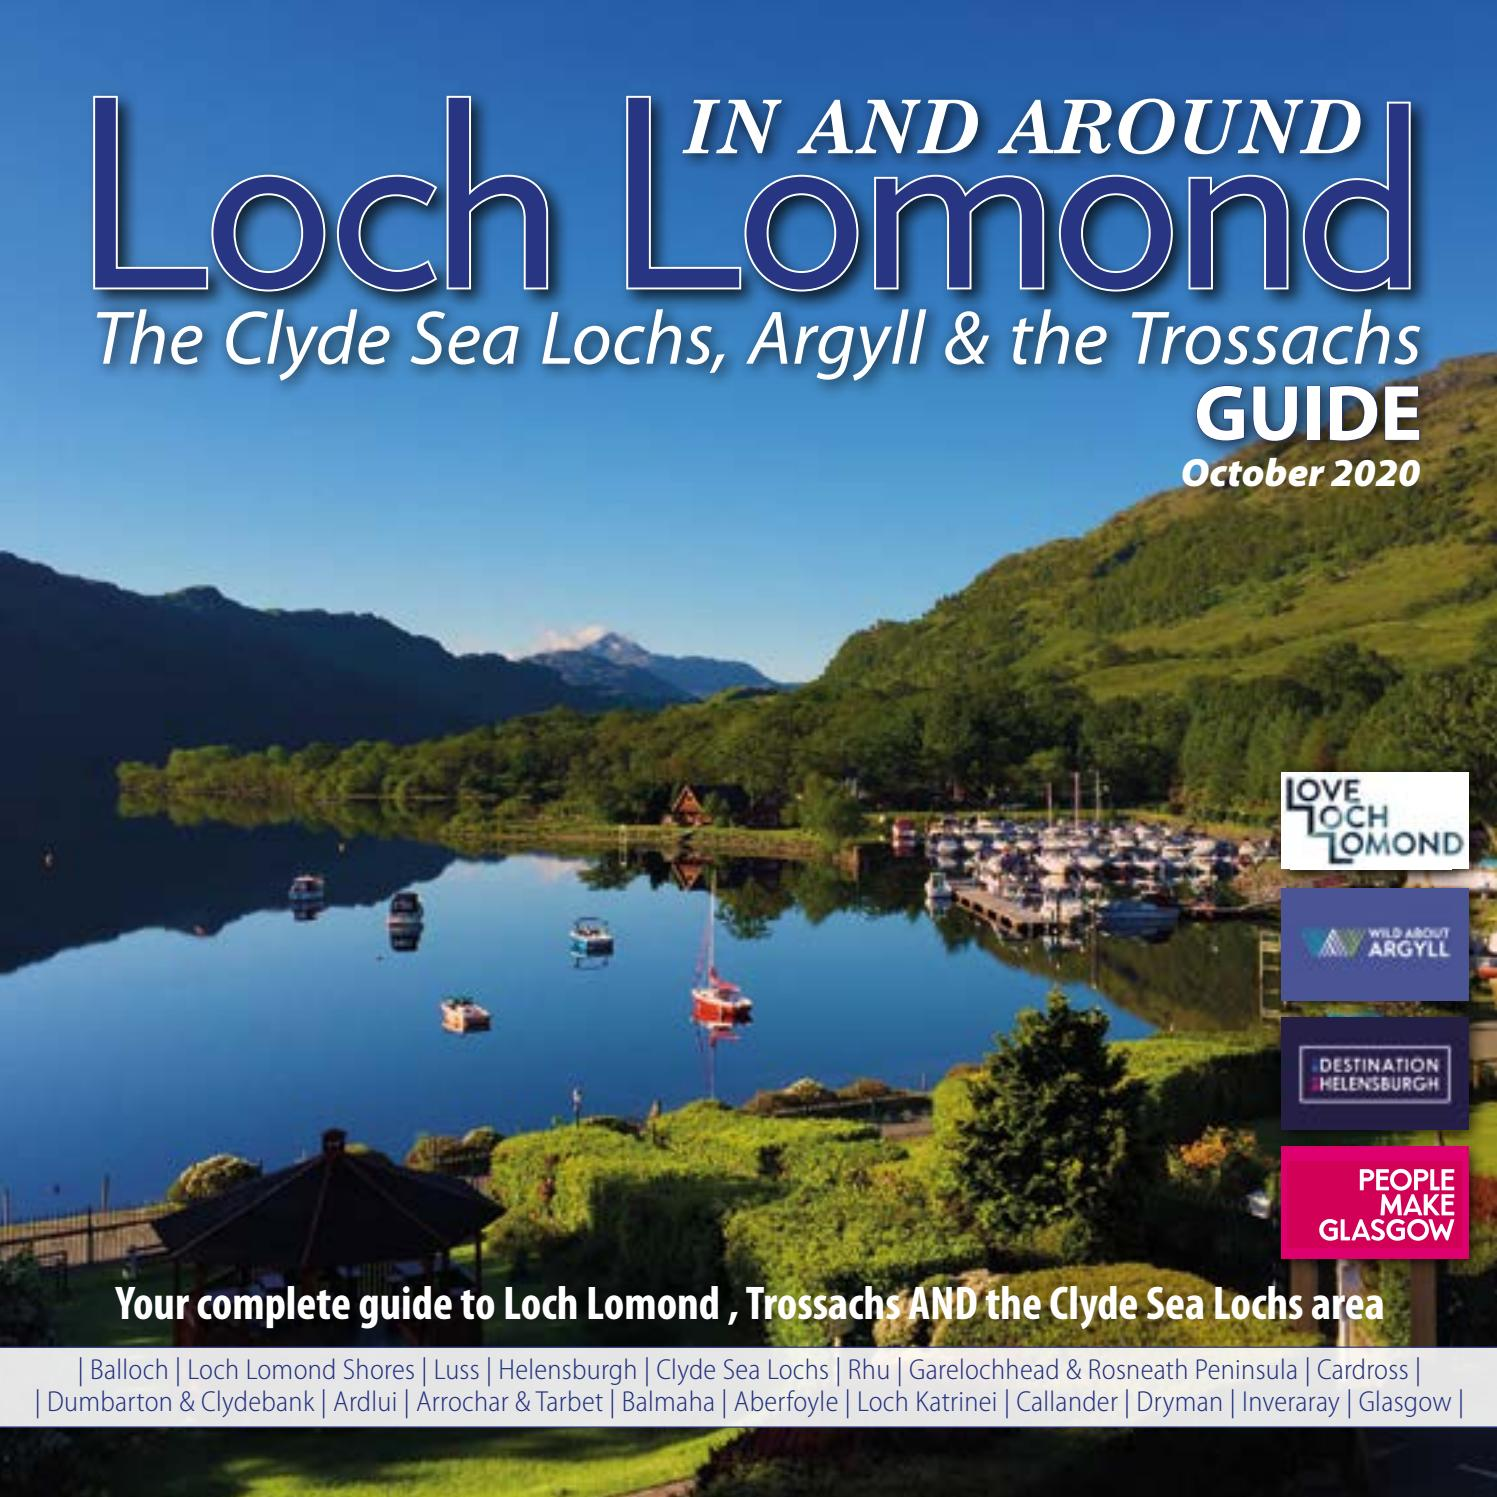 In Around Loch Lomond Guide Oct Nov 2020 By Downtown Publishing Issuu